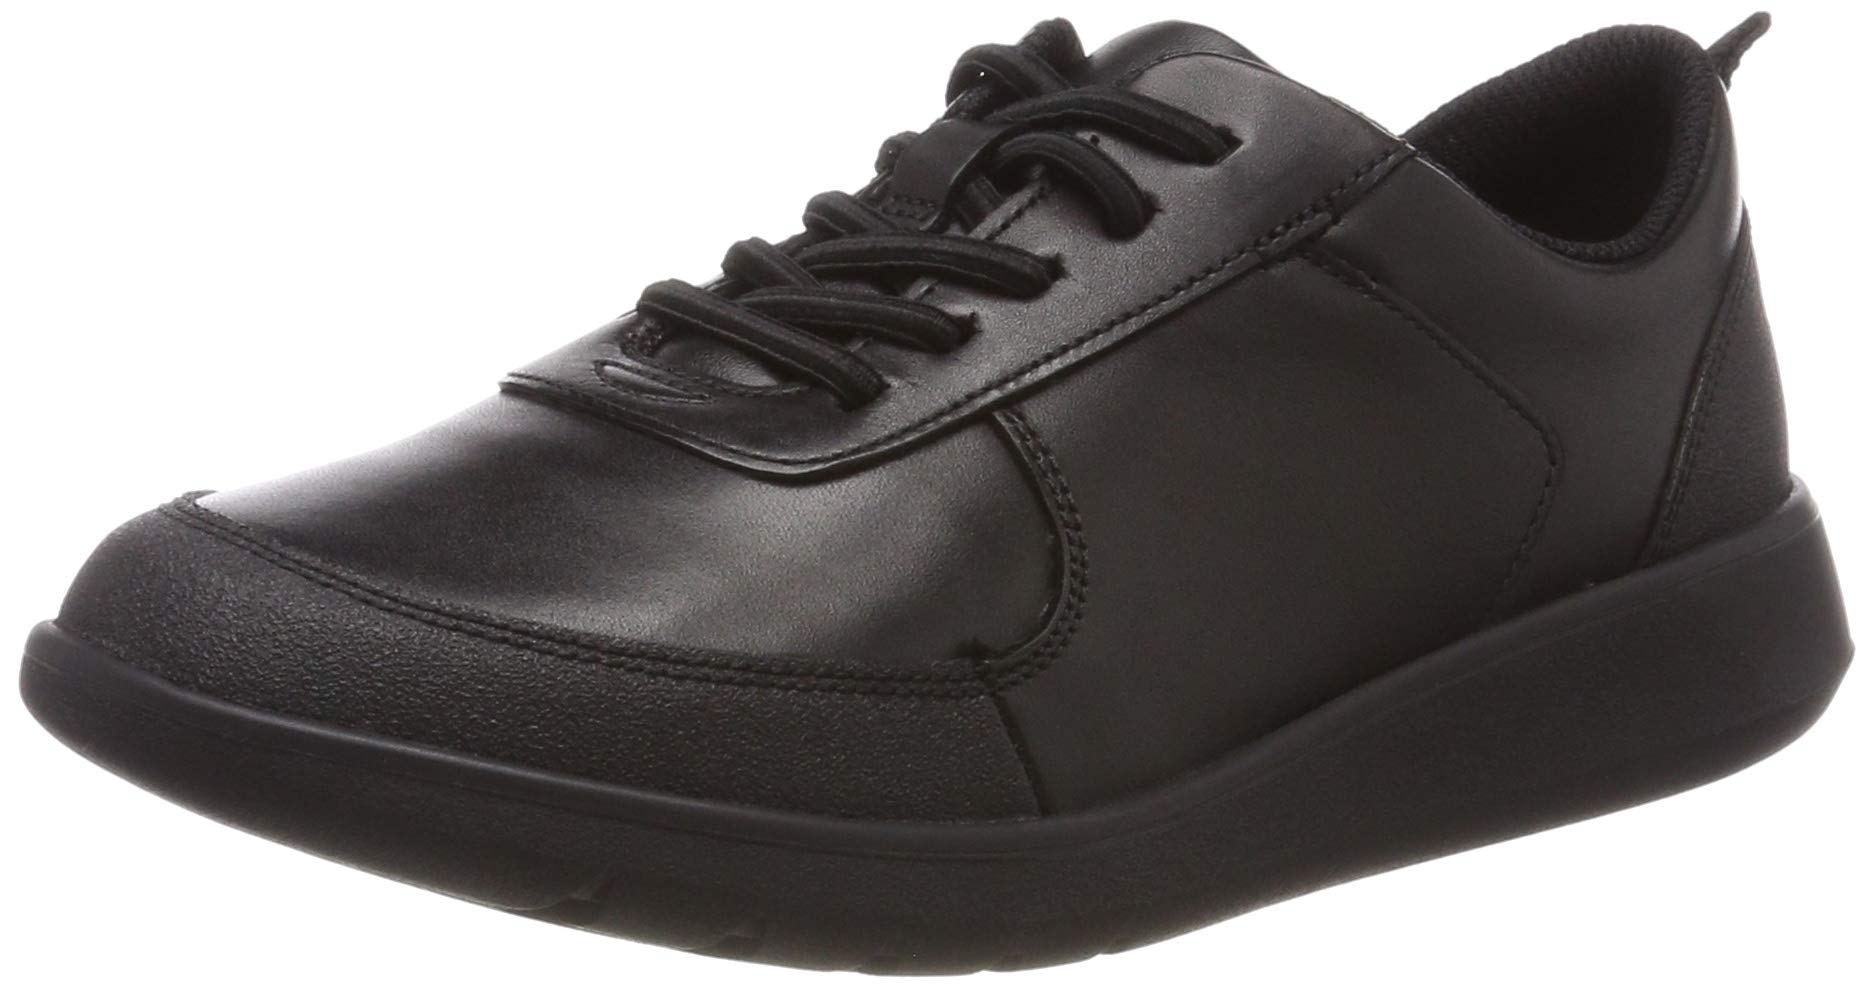 CLARKS Boys' Scape Street K Brogues, (Black Leather-), 1.5 UK